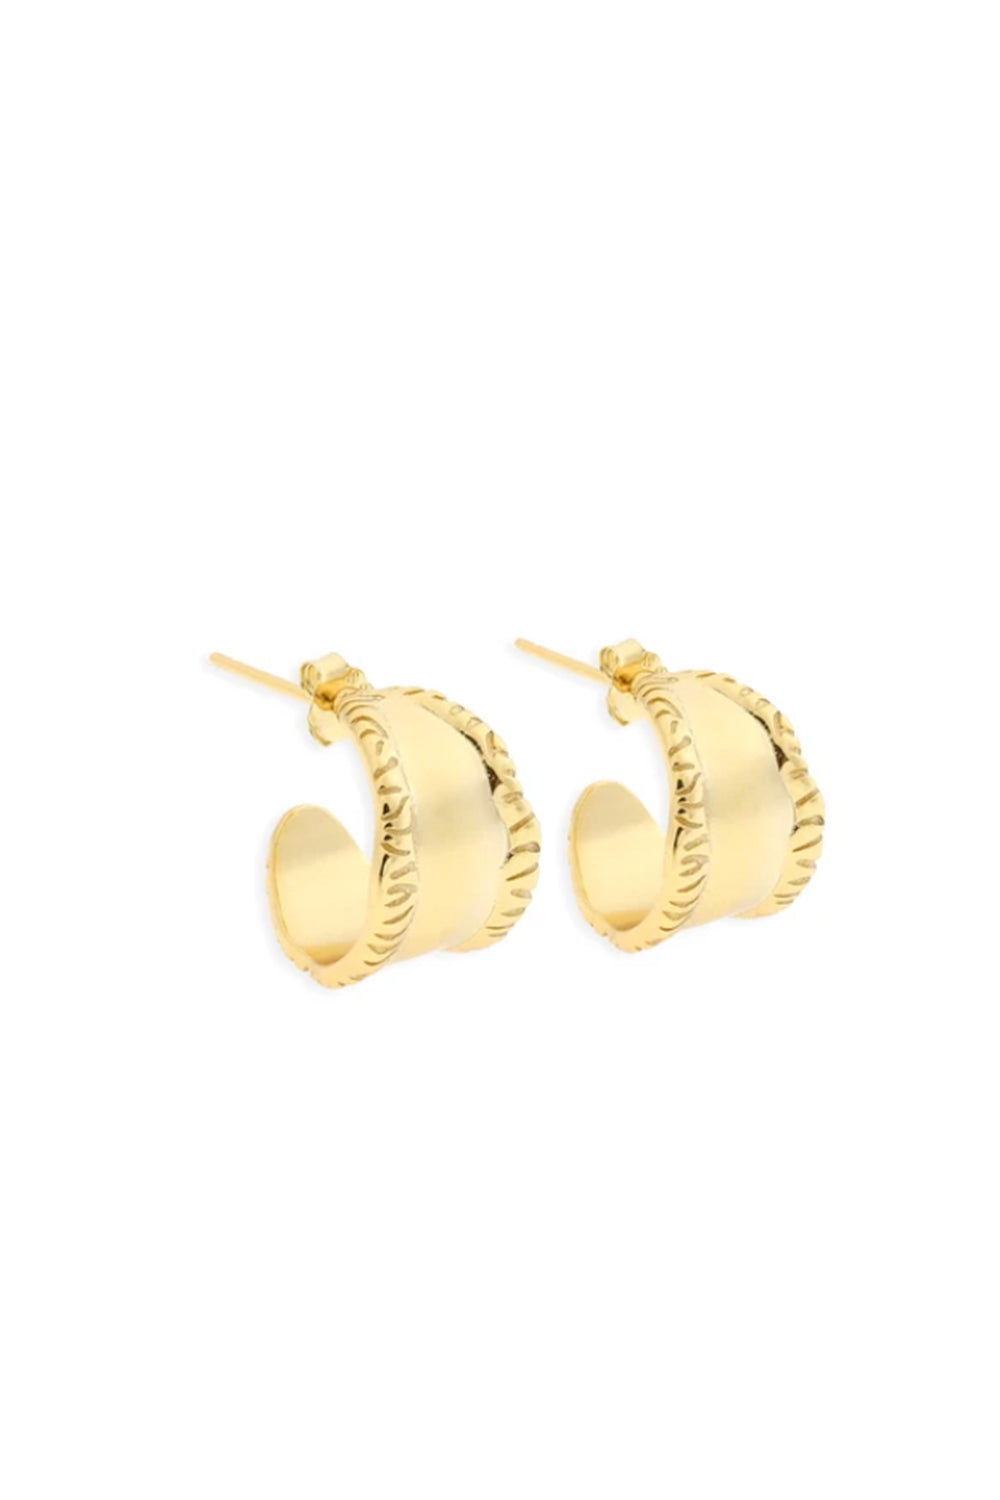 ARMS OF EVE - Mia Gold Hoops - Australian Fashion and Accessories Boutique - Faid Store